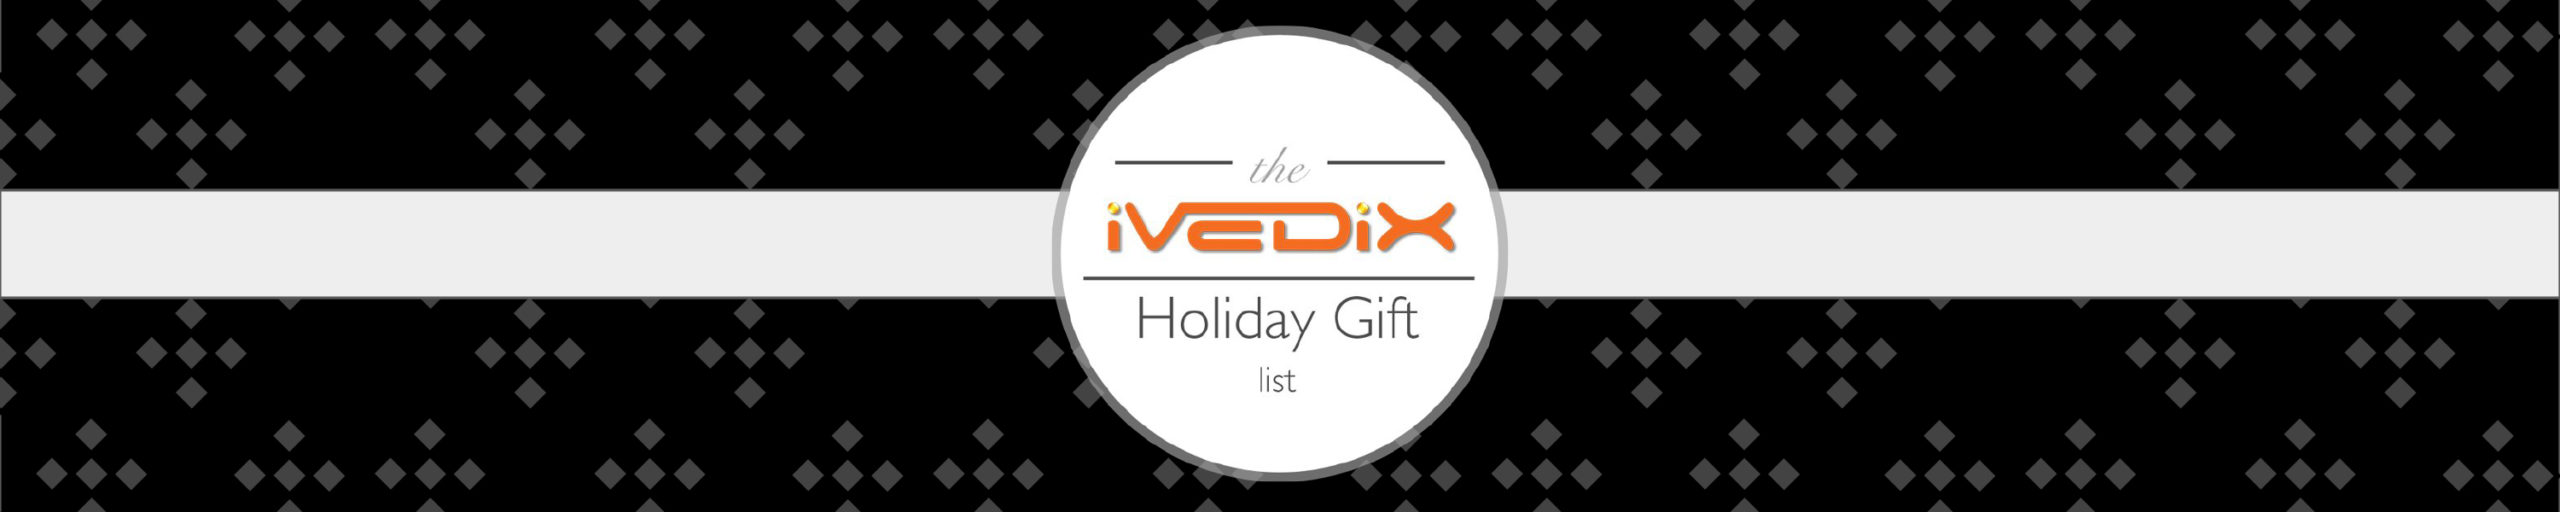 2016 iVEDiX Holiday Gift List